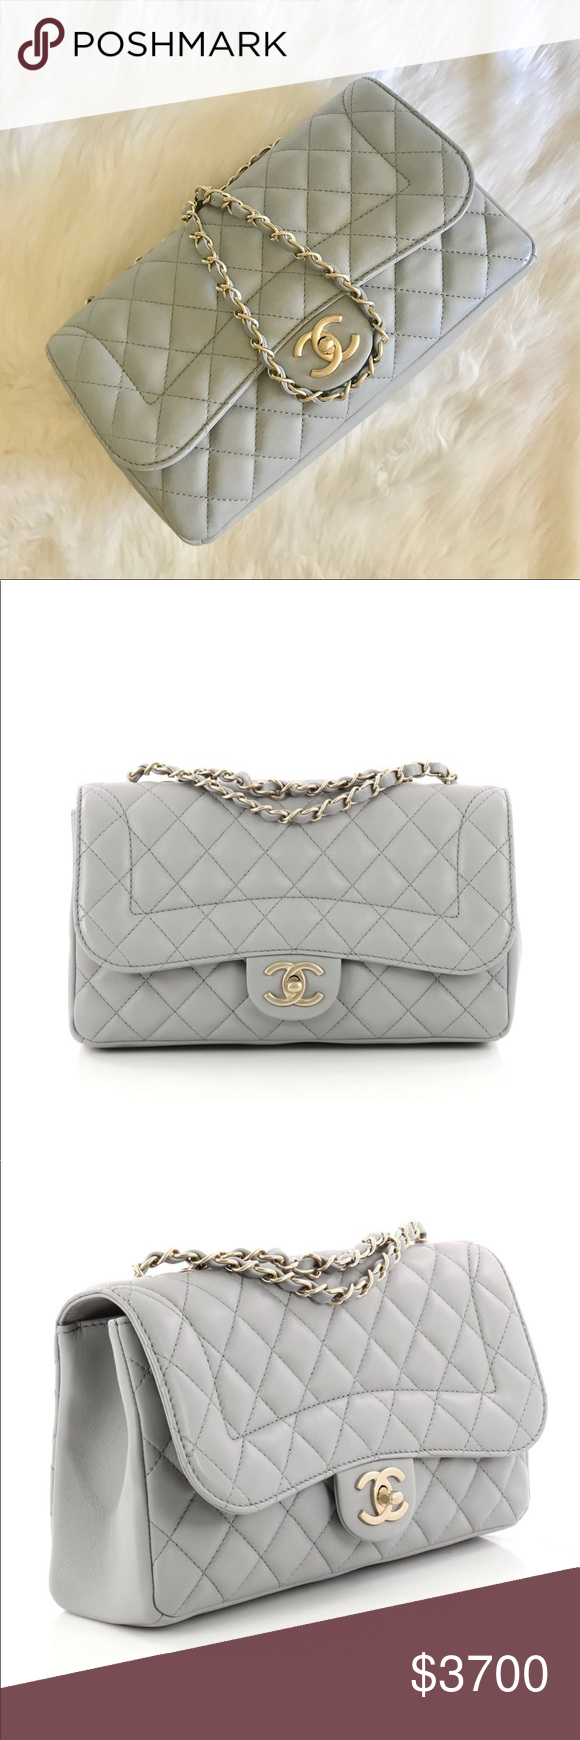 1e5f47728a7aef Chanel Mademoiselle Chic Flap chain bag Like new Chanel flap bag with chain  in medium with dustbag and authenticity card. In a shade of light grey.  CHANEL ...